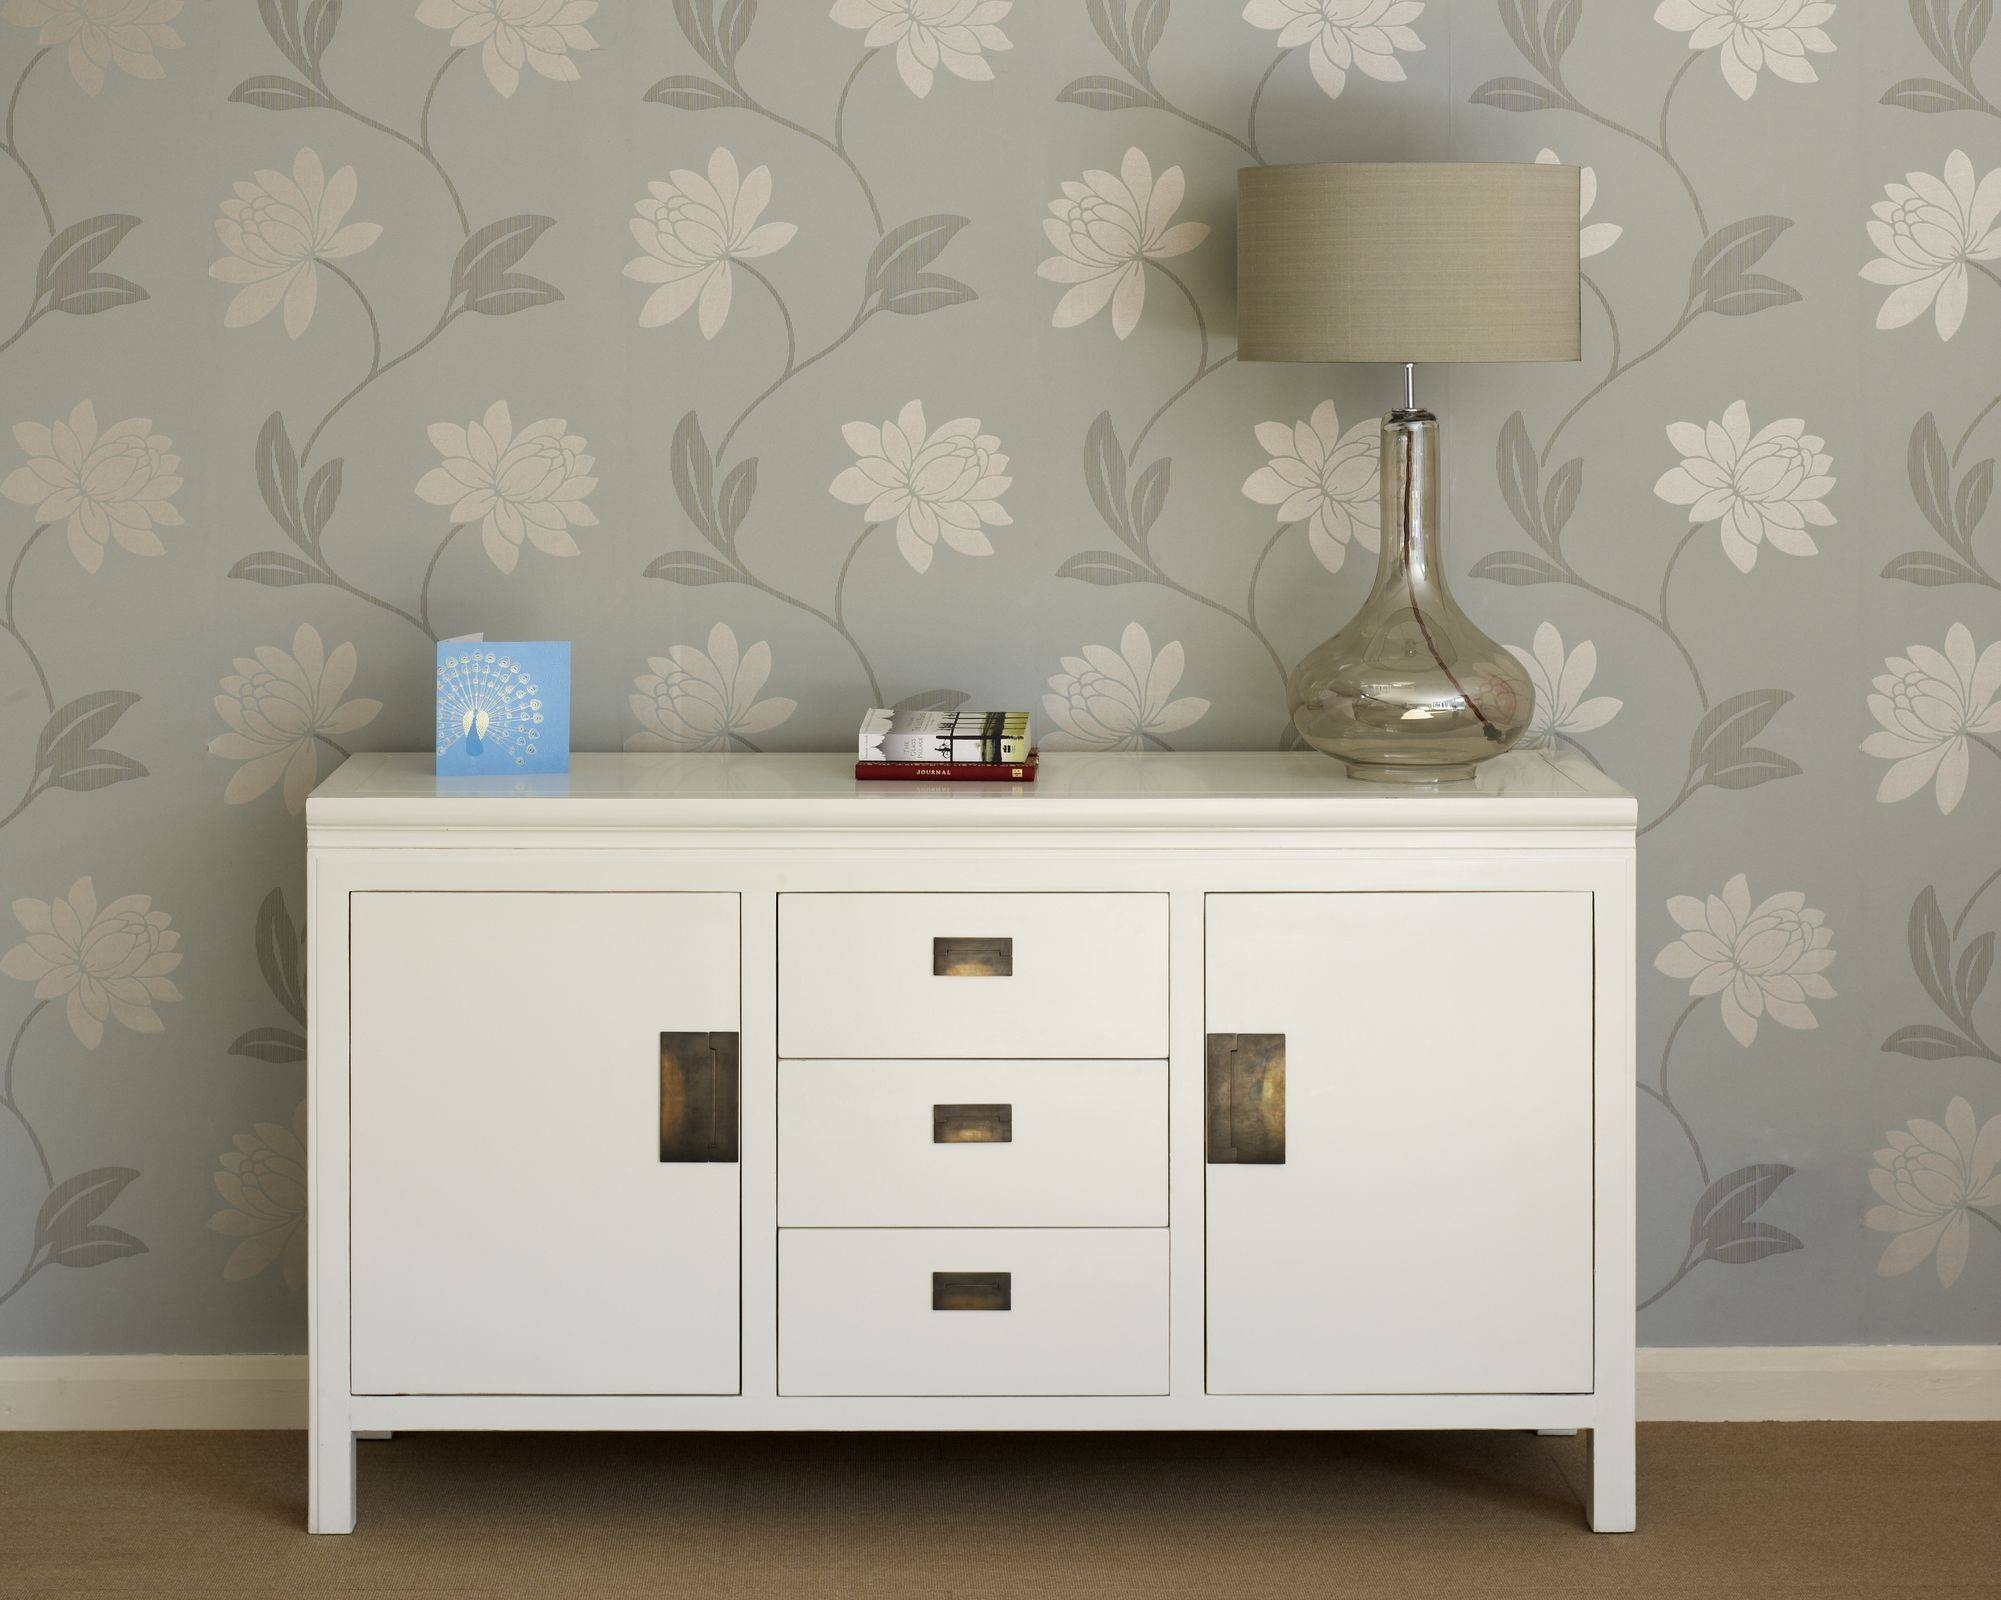 Oriental White Lacquer Sideboards – Shanxi Inside Large White Sideboard (#15 of 20)